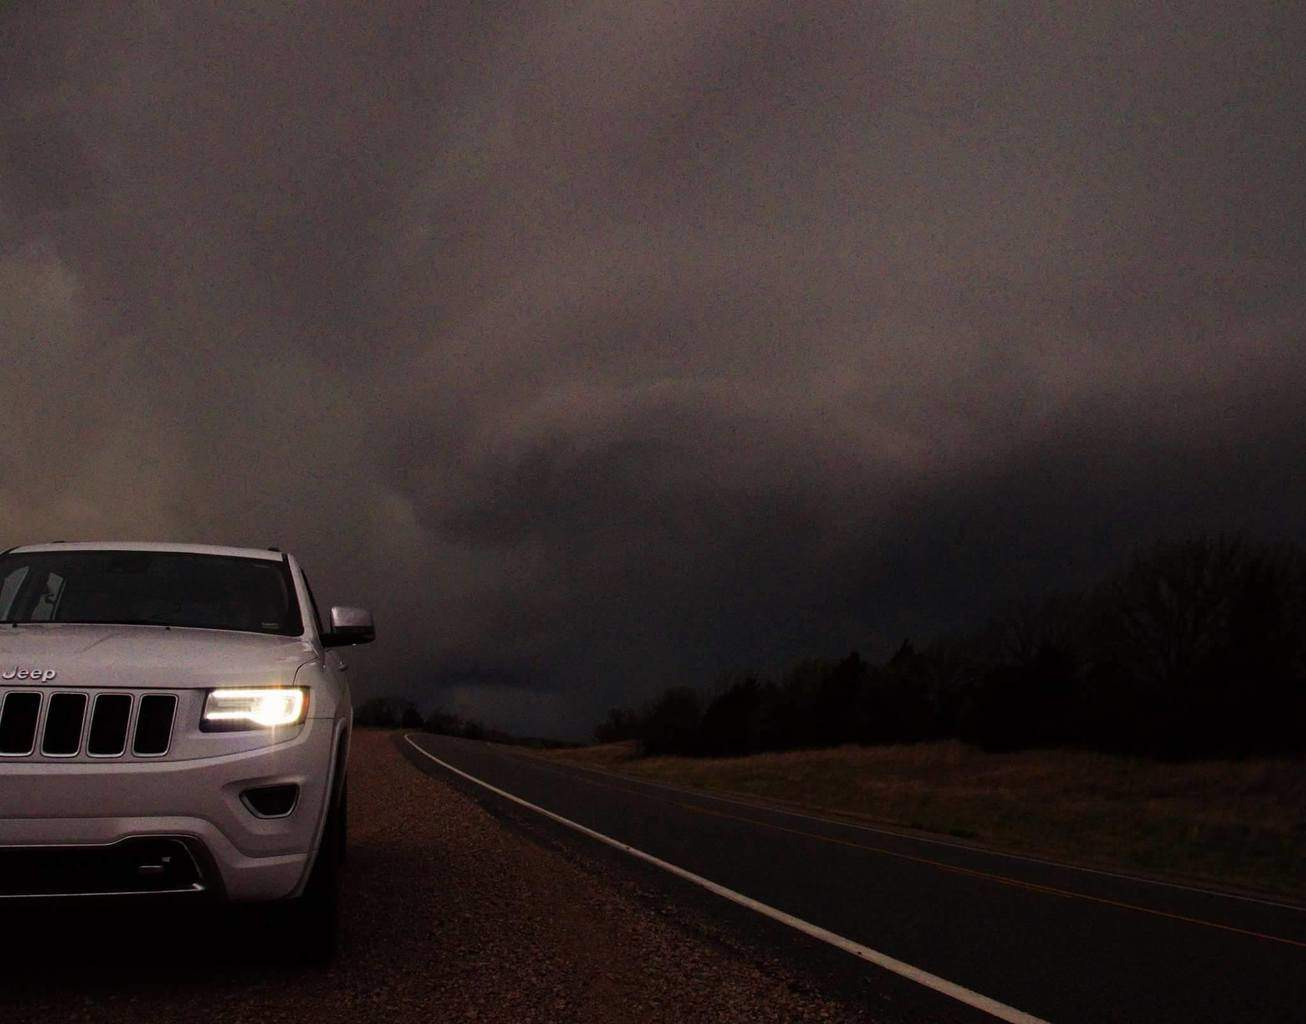 My chase vehicle beckoning a mesocyclone in northern oklahoma 3/30/16